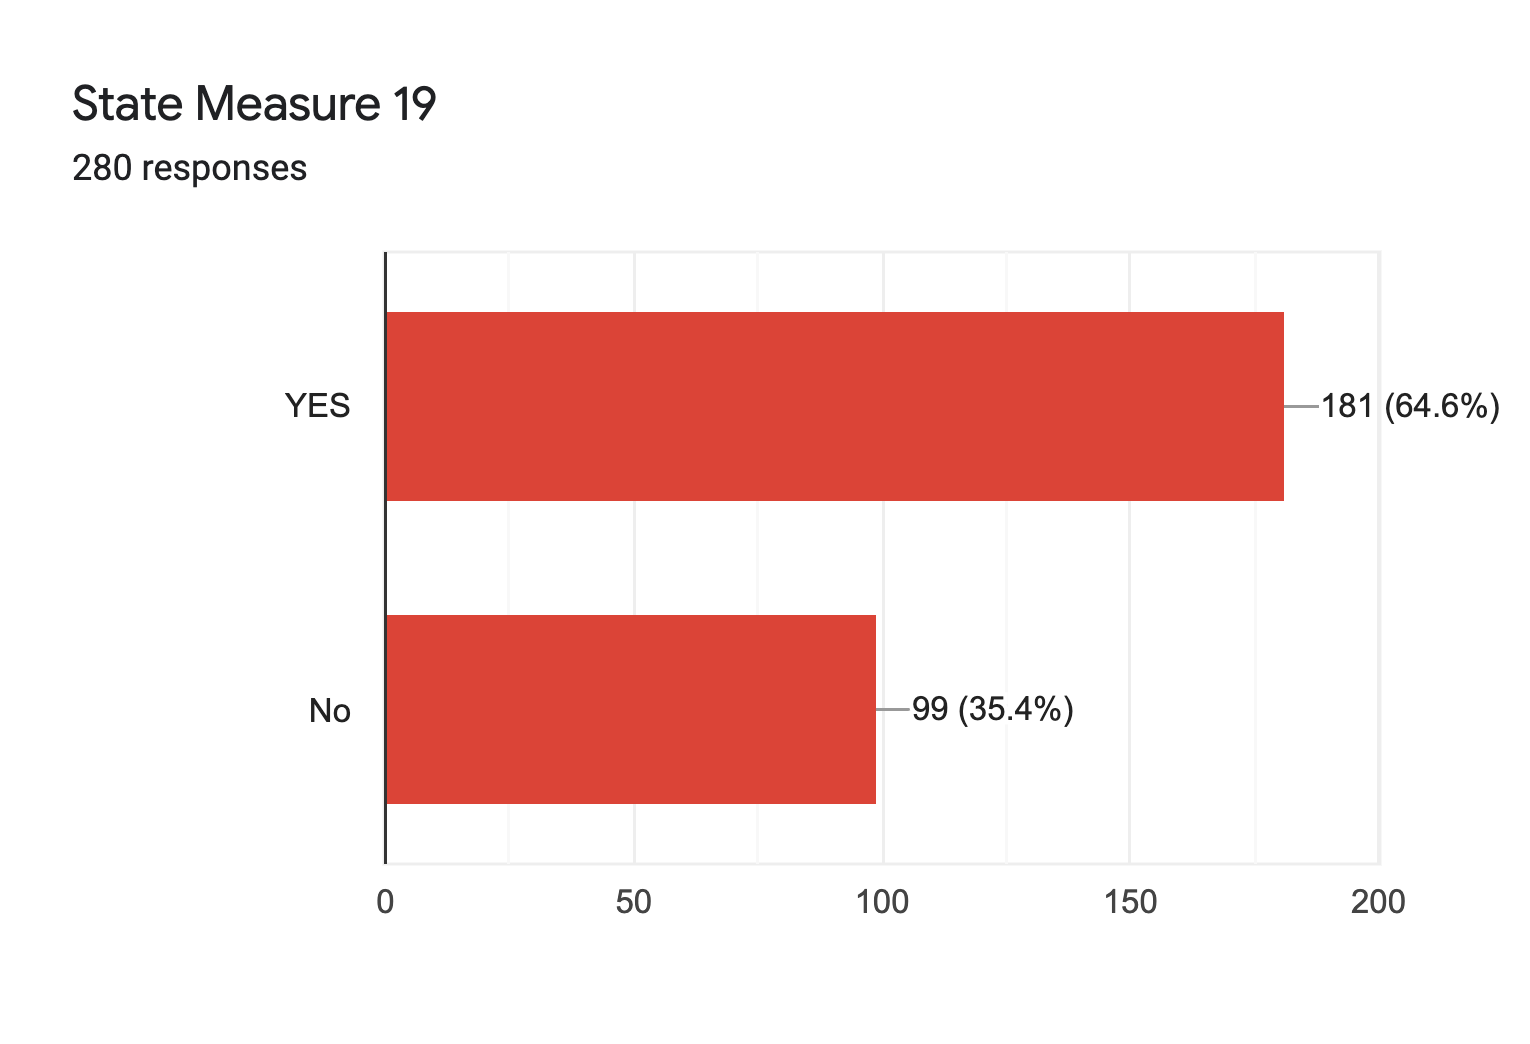 Forms response chart. Question title: State Measure 19. Number of responses: 280 responses.